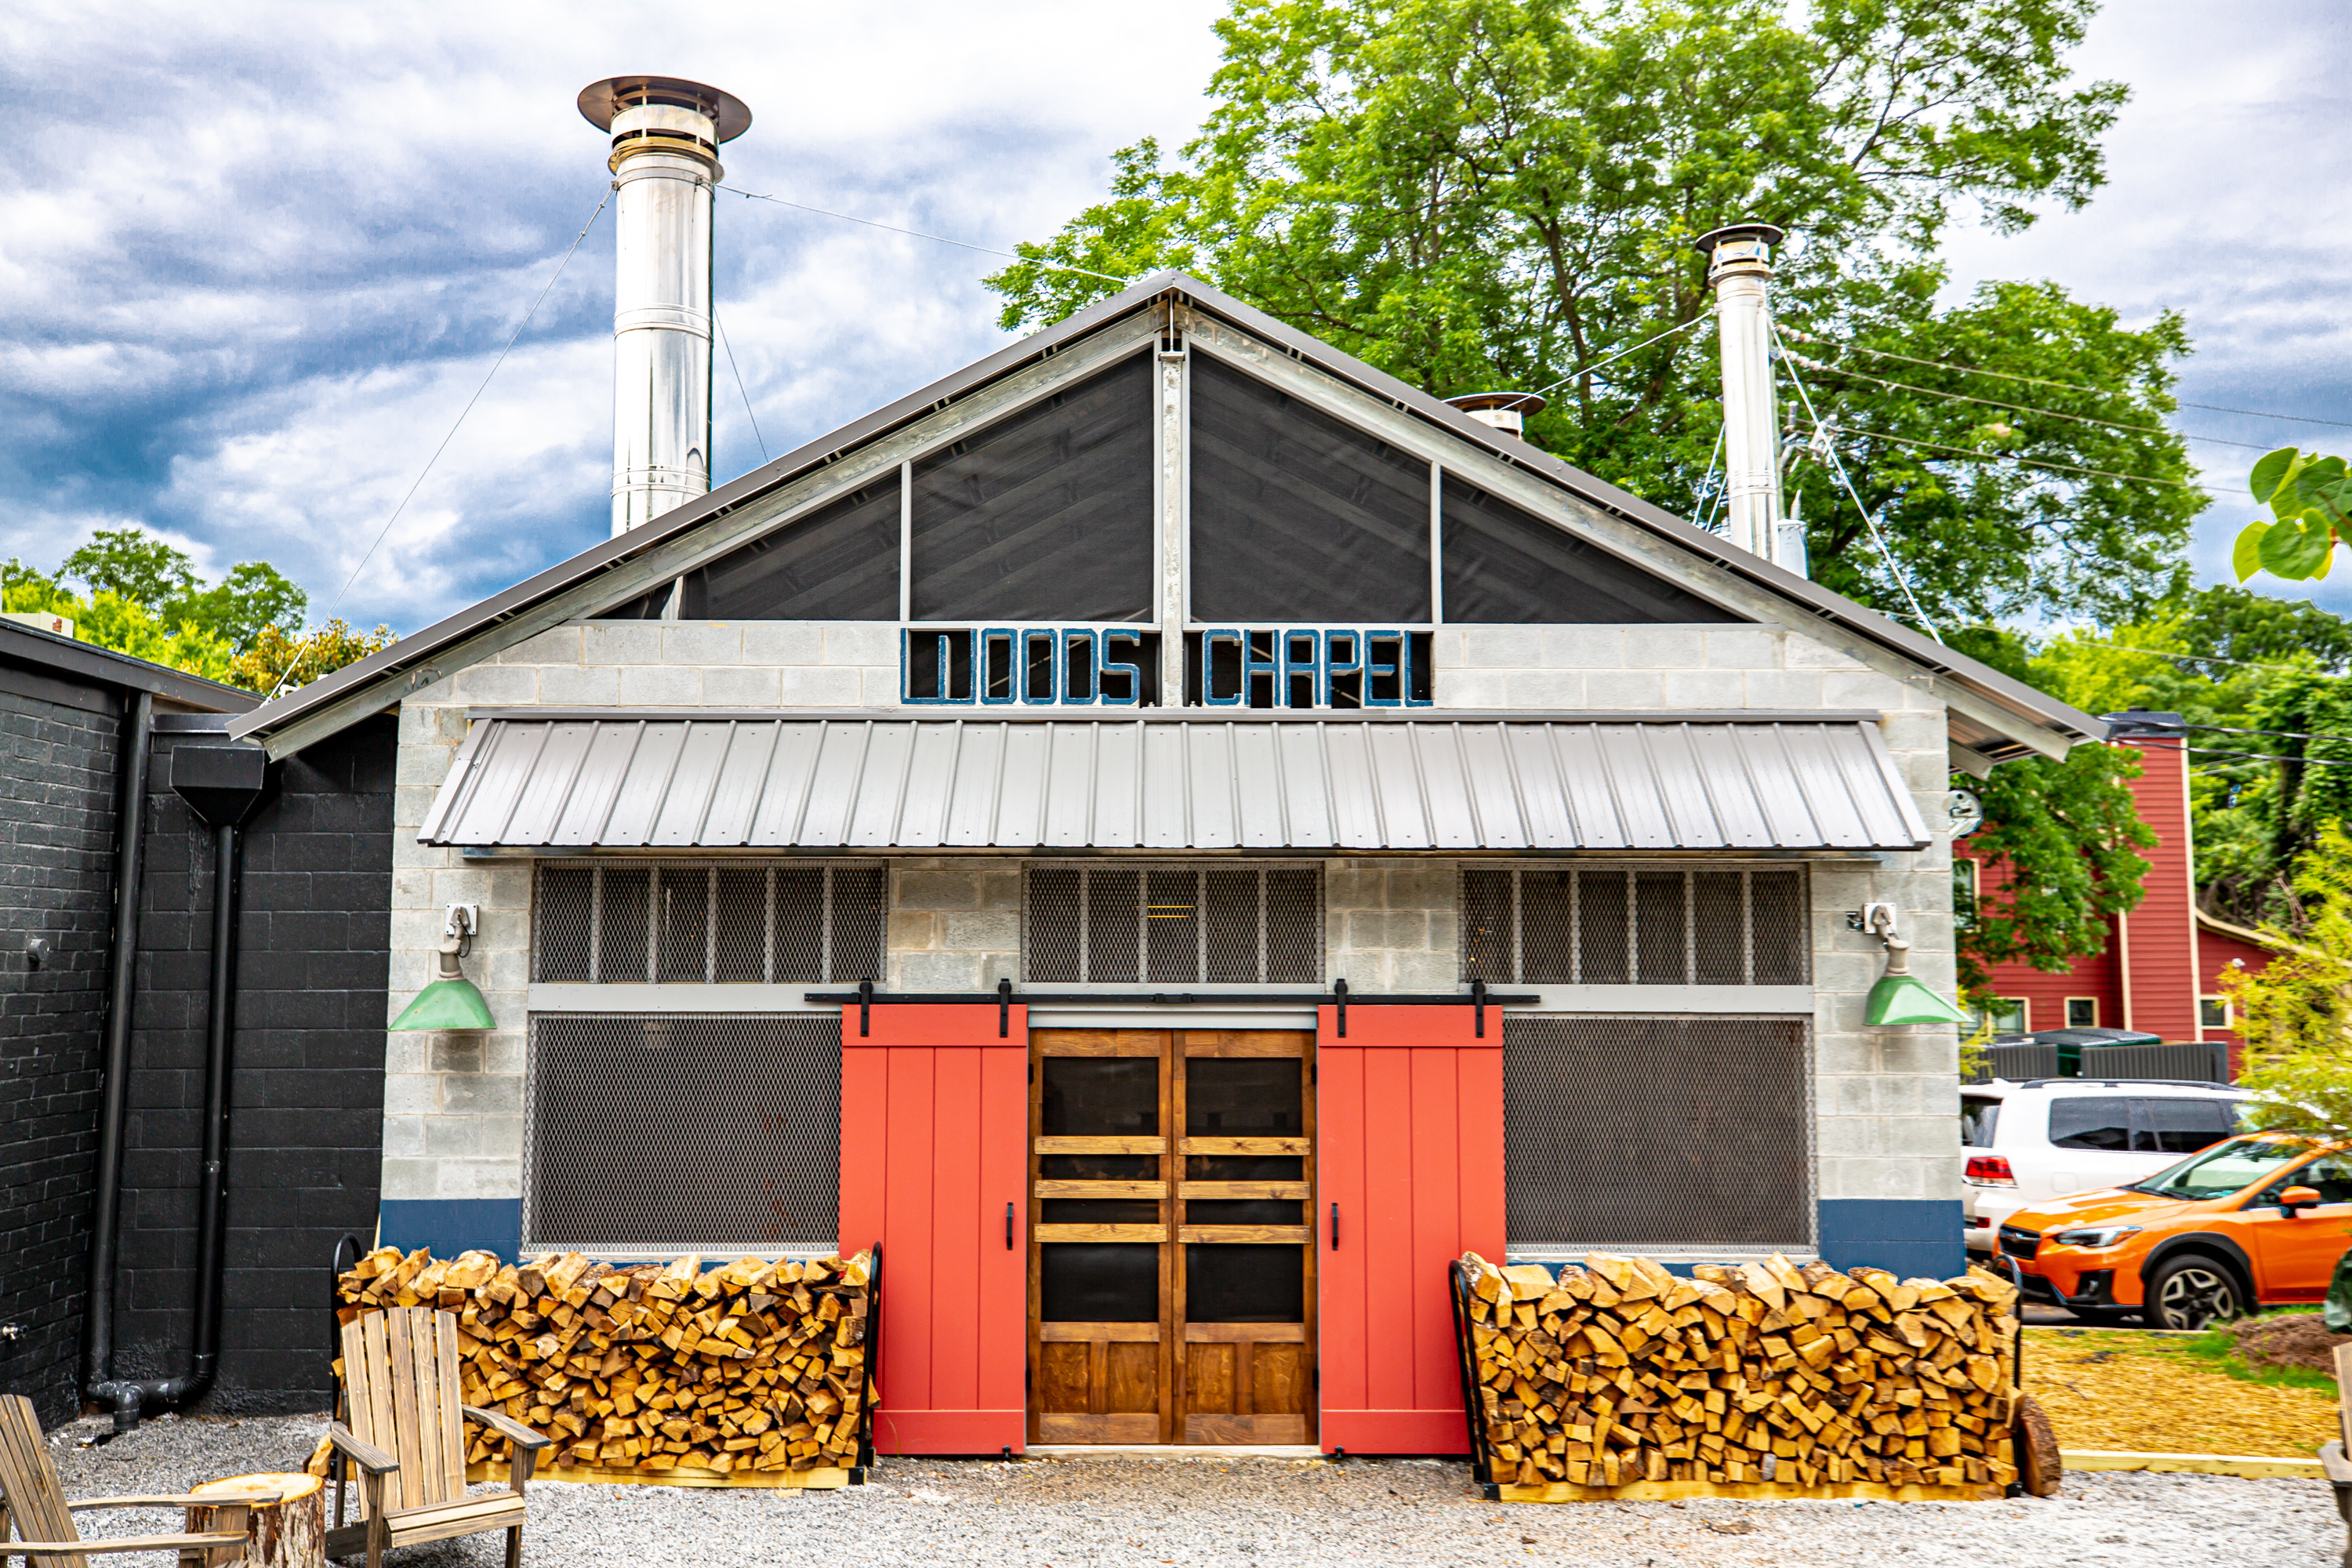 Peek Inside Wood's Chapel, Bringing Barbecue and Chess Pie to Summerhill Today